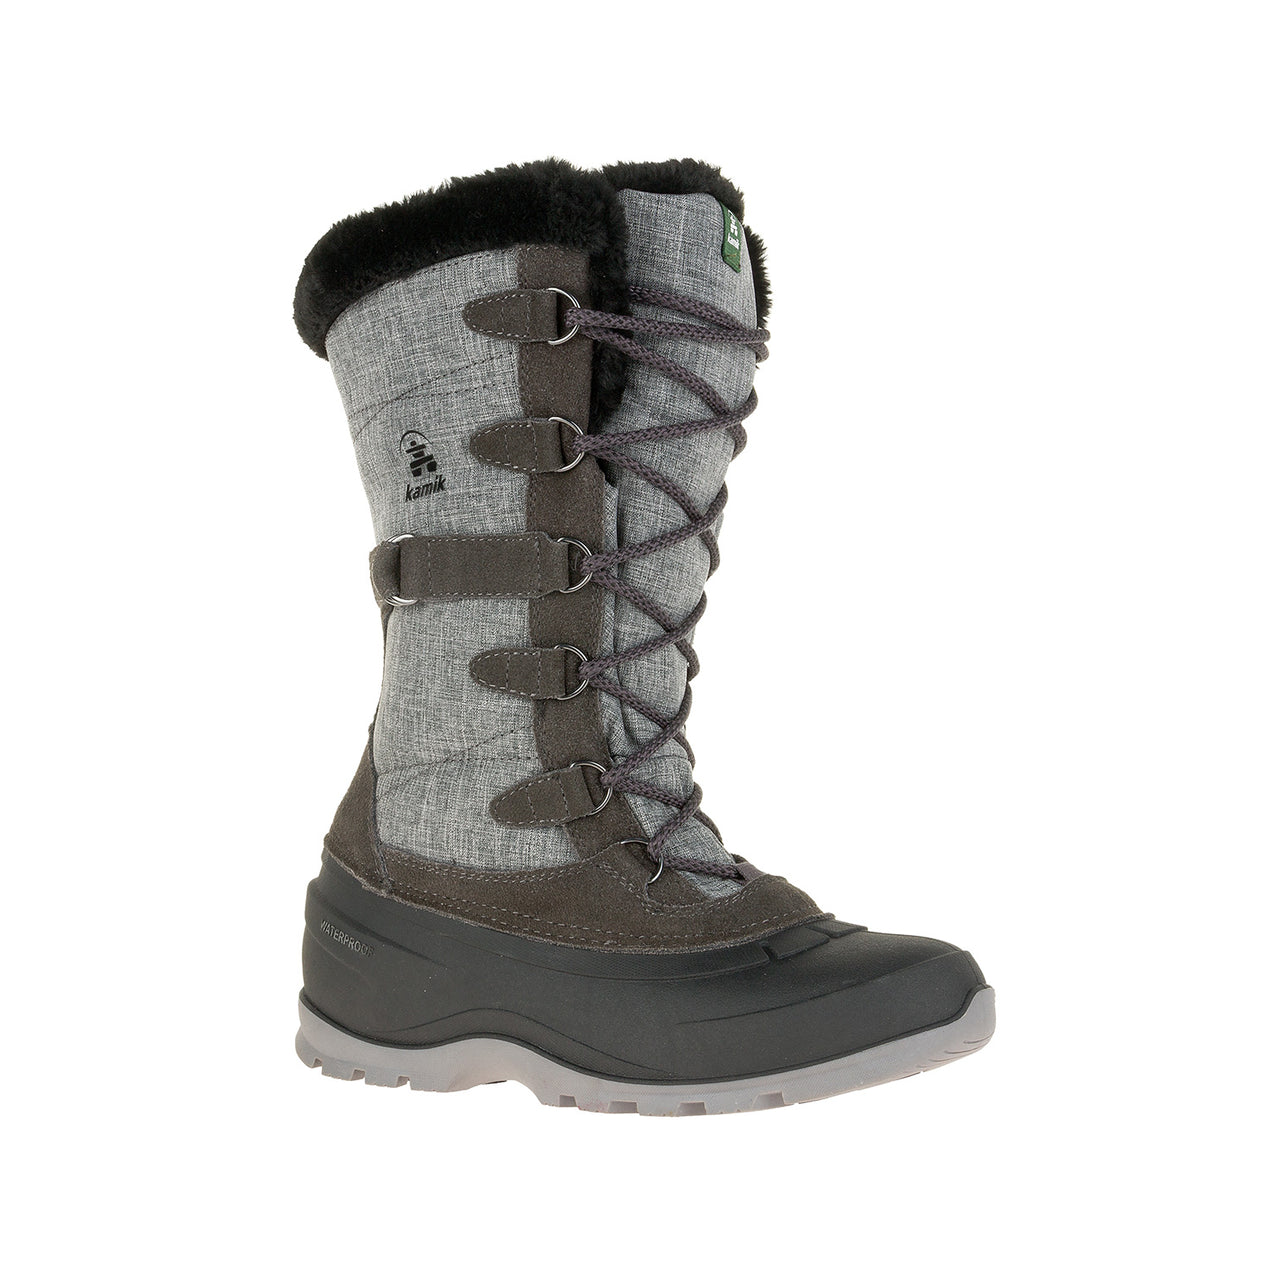 958f168dc3ed Kamik Women s -40f -40c Snovalley2 Winter Boots